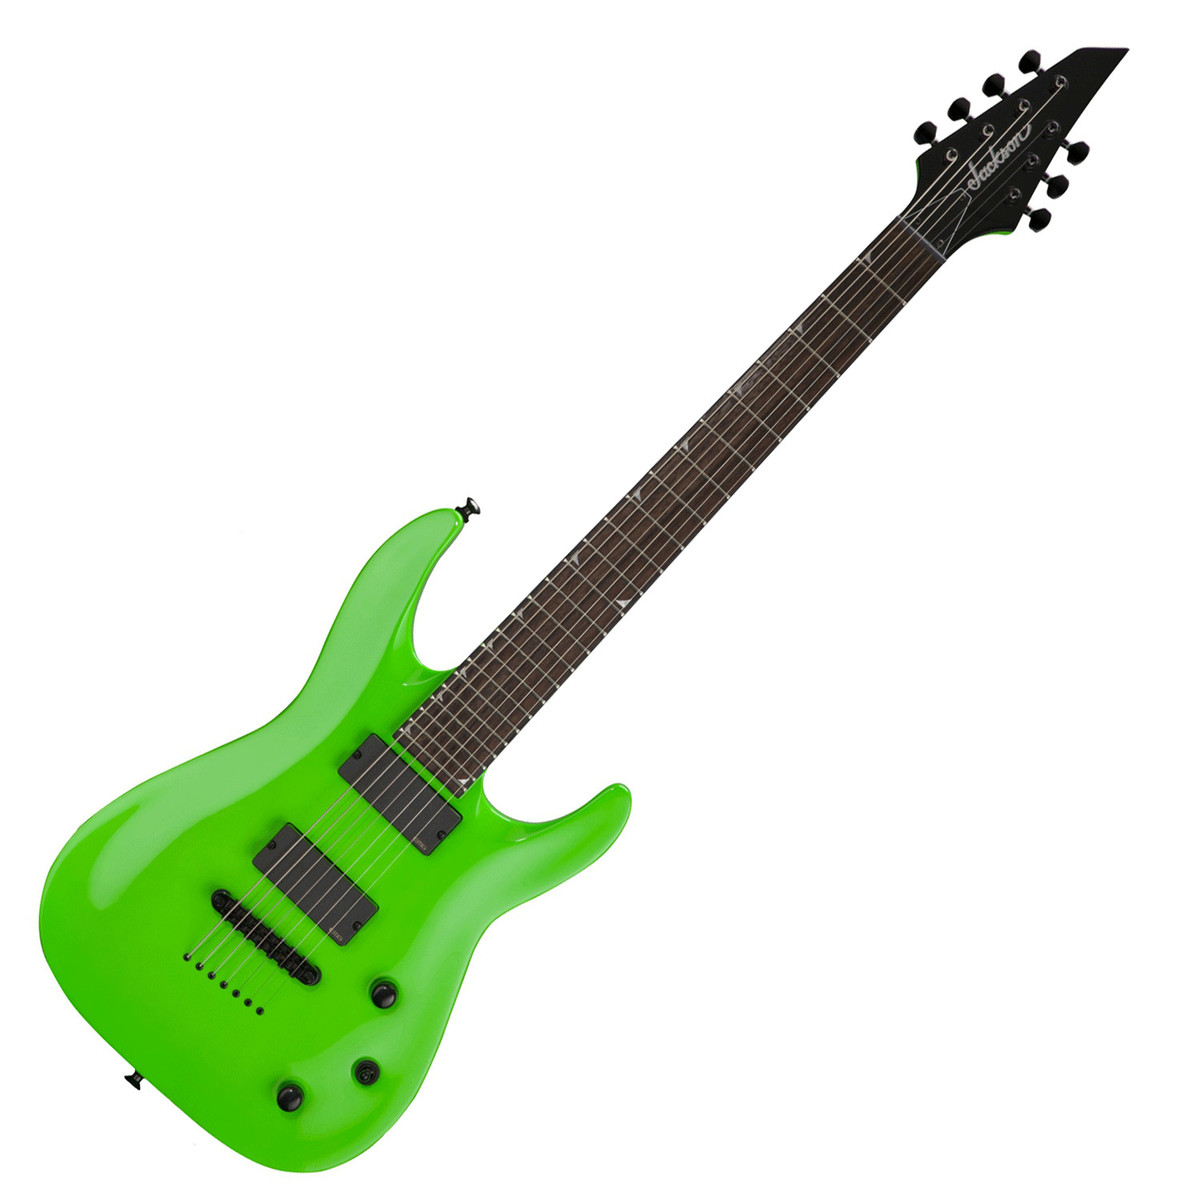 jackson x series slattxmg3 7 soloist 7 string guitar slime green at. Black Bedroom Furniture Sets. Home Design Ideas